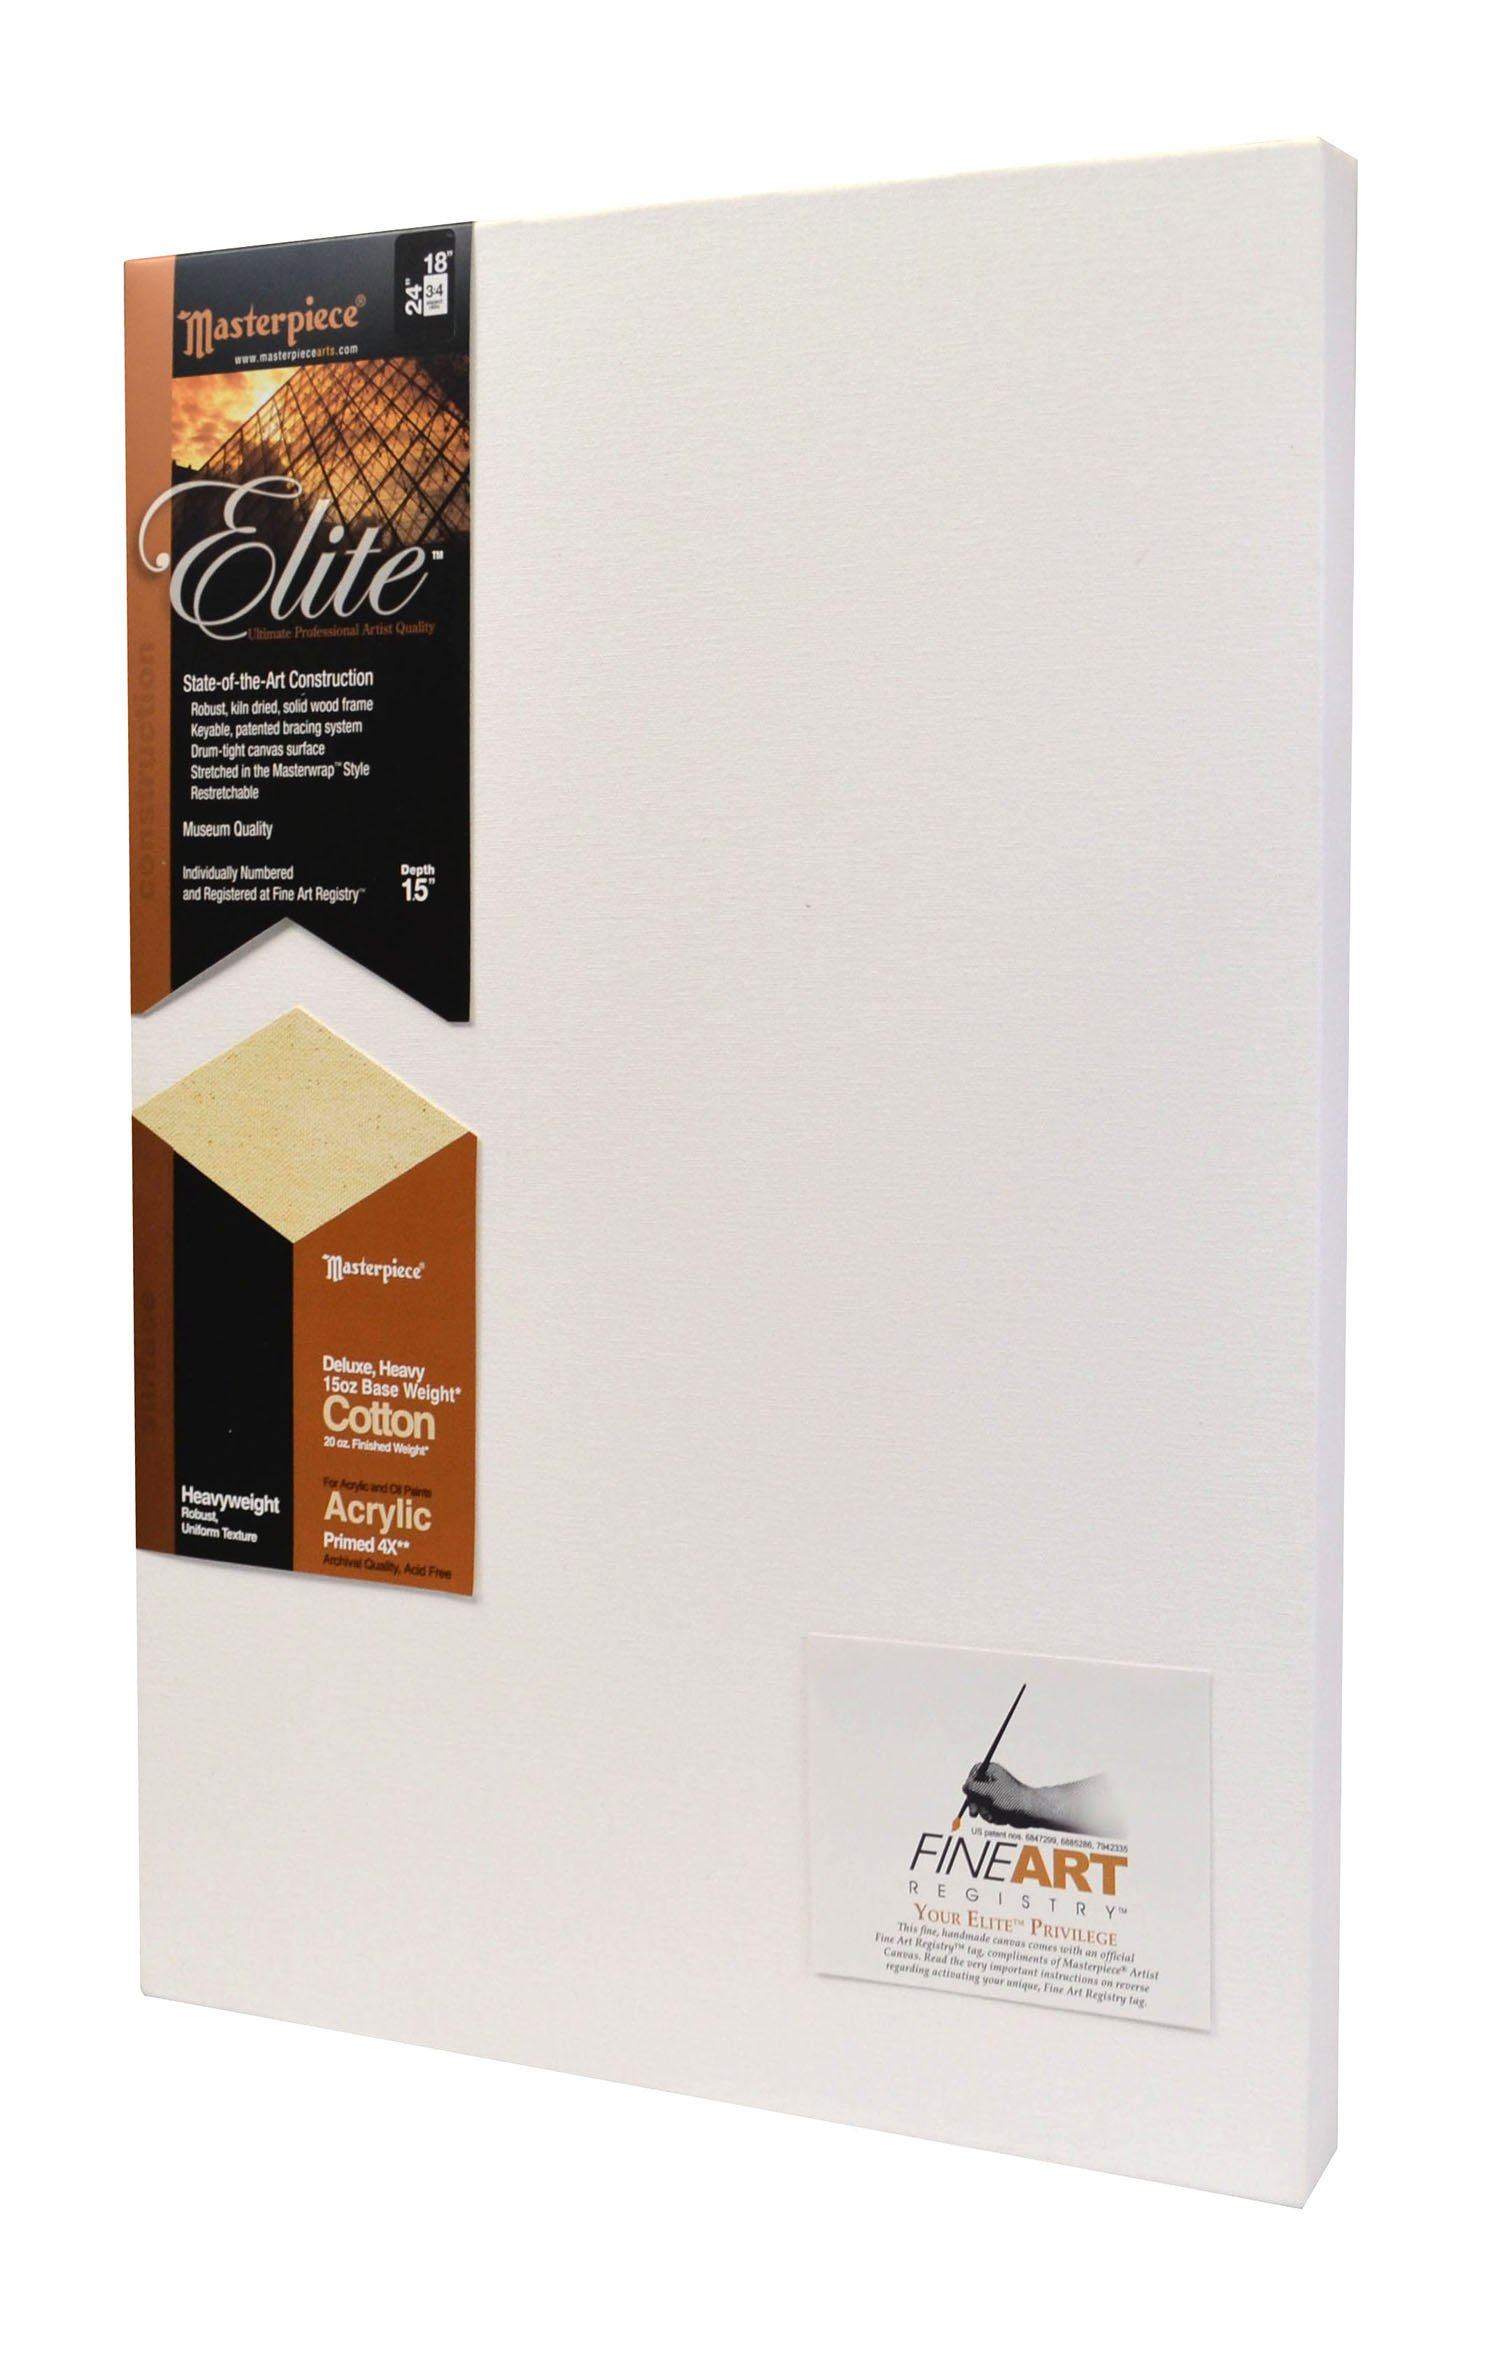 Masterpiece Artist Canvas 34513 Elite 1-1/2'' Deep, 15'' x 20'', Heavy 15-Ounce Acrylic Primed Cotton by Masterpiece Artist Canvas